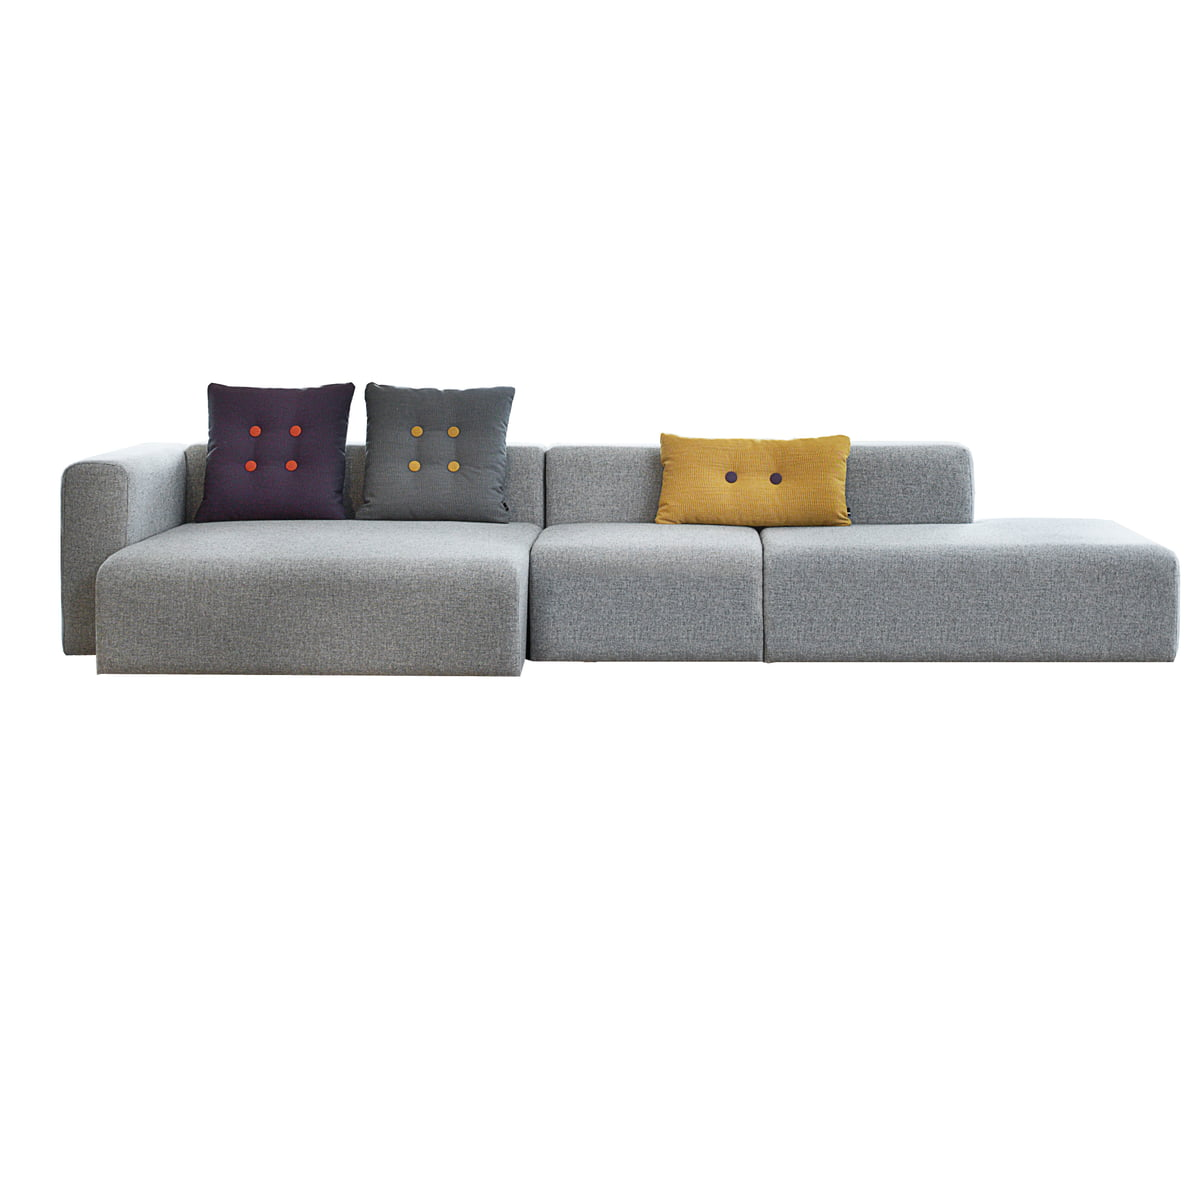 hay mags sofa fabrics cover scratches cream leather dot cushion 46 x 60 cm steelcut trio